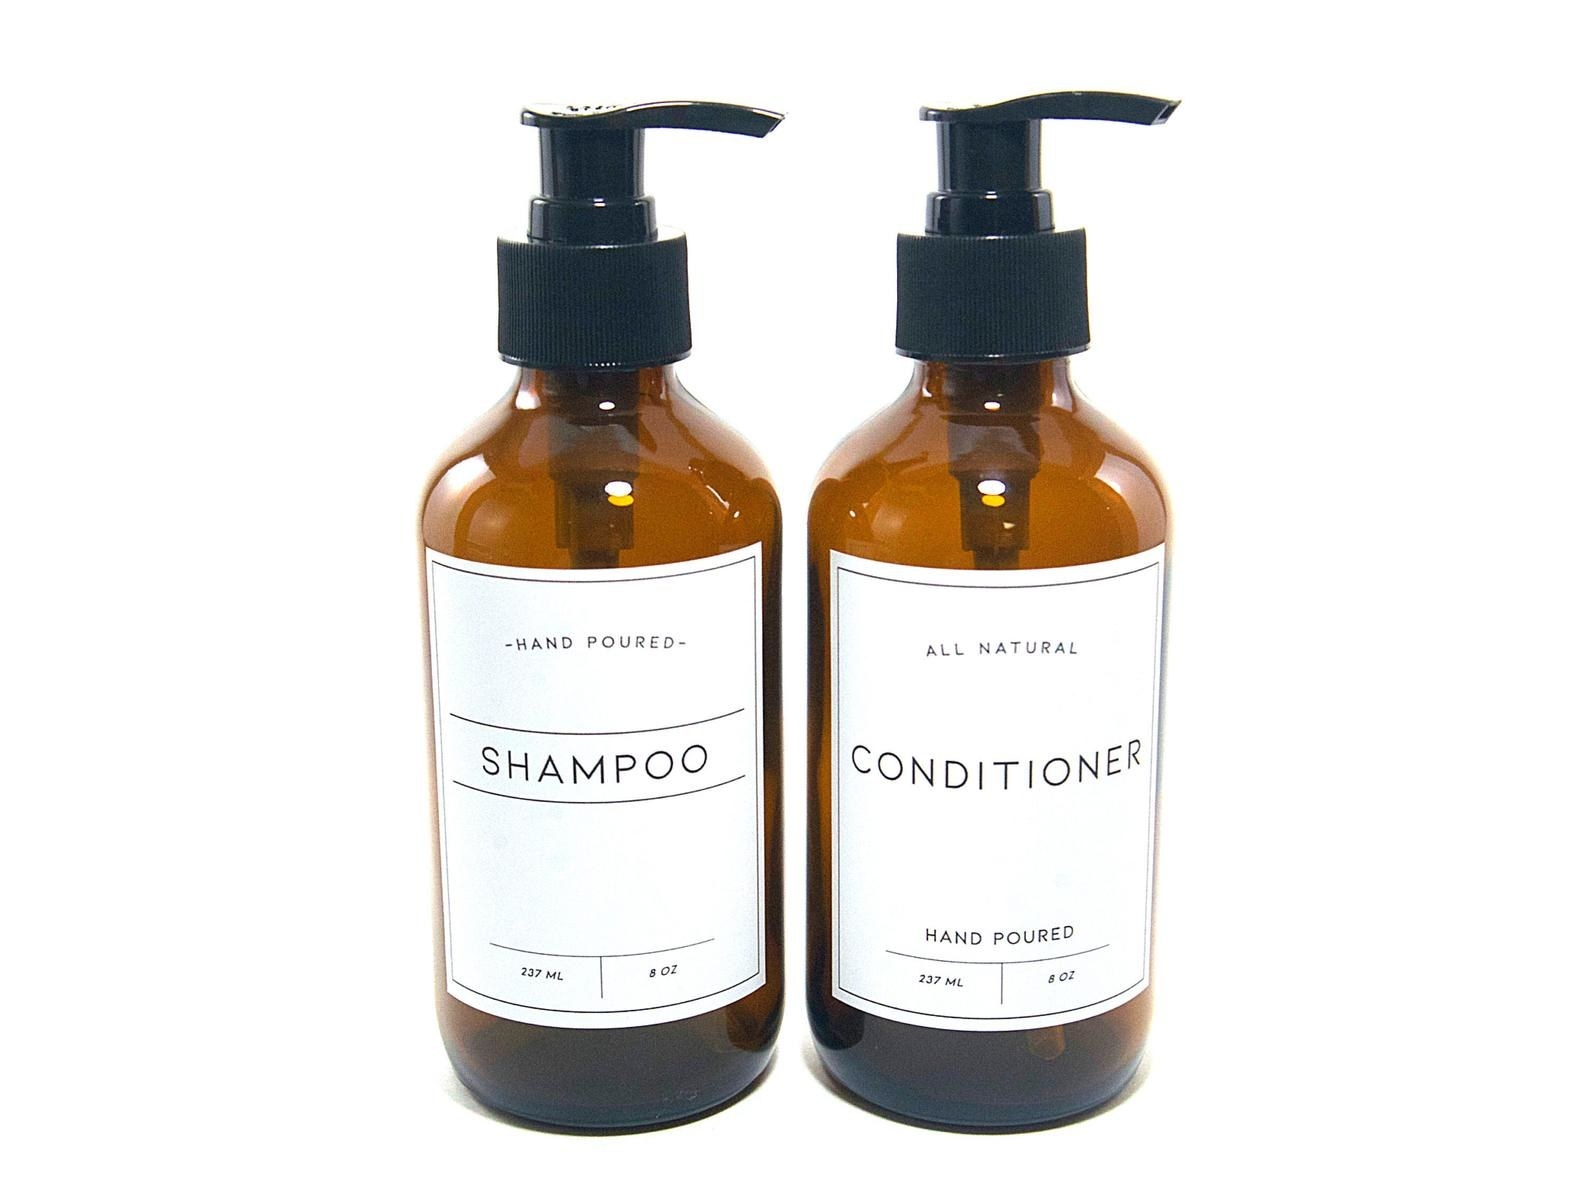 Two bottles of shampoo and conditioner with minimalist white labels